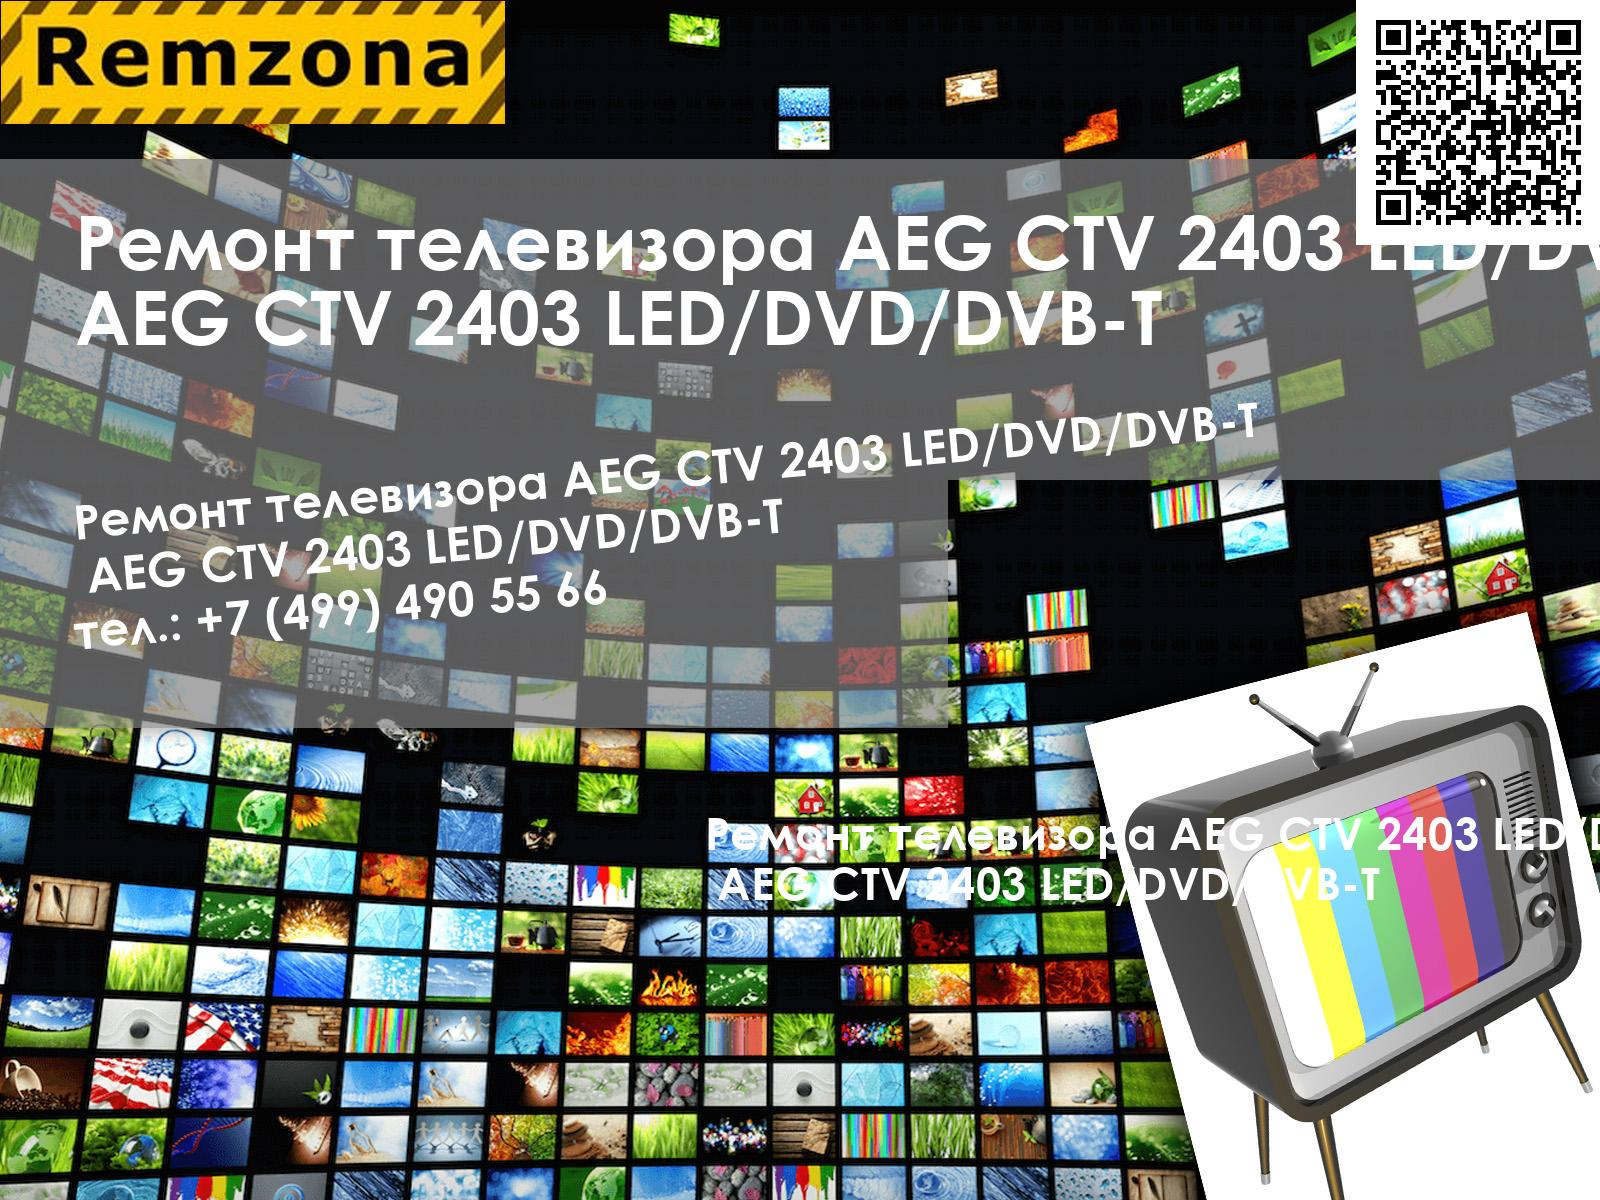 Ремонт телевизора AEG CTV 2403 LED/DVD/DVB-T